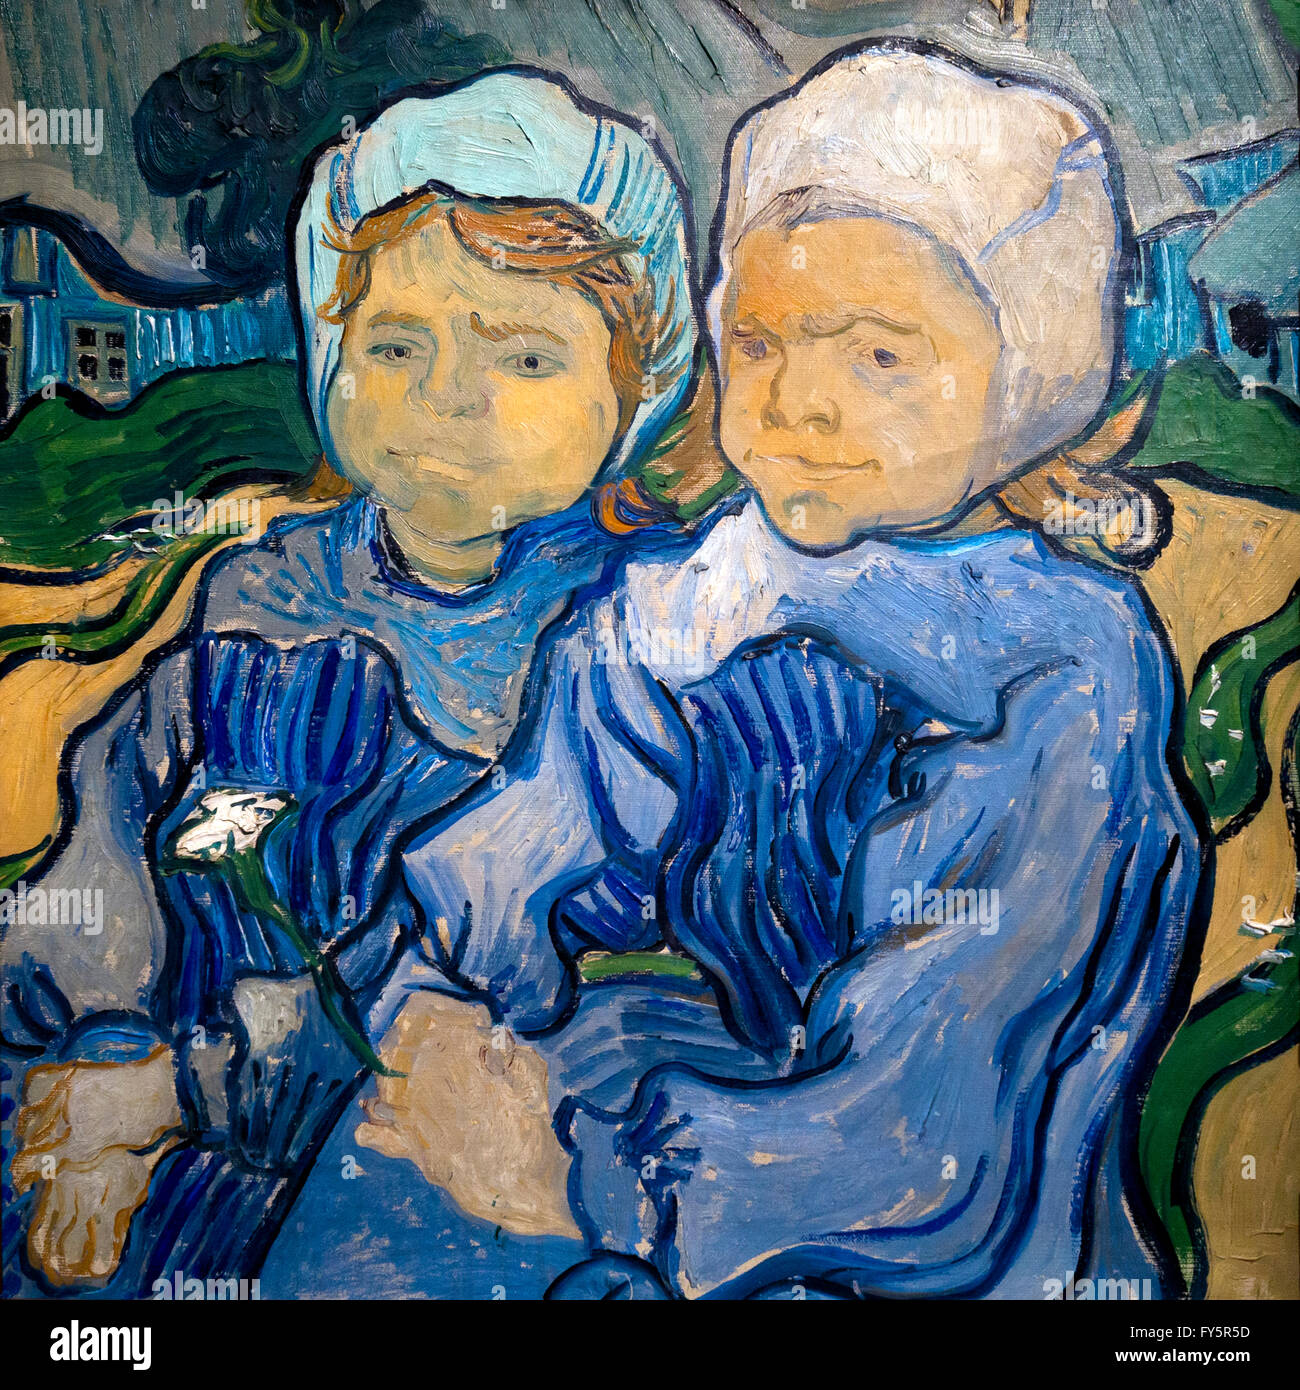 Two Girls, Out of Temper, Deux fillettes, by Vincent van Gogh, 1890, Musee D'Orsay, Paris, France, Europe - Stock Image